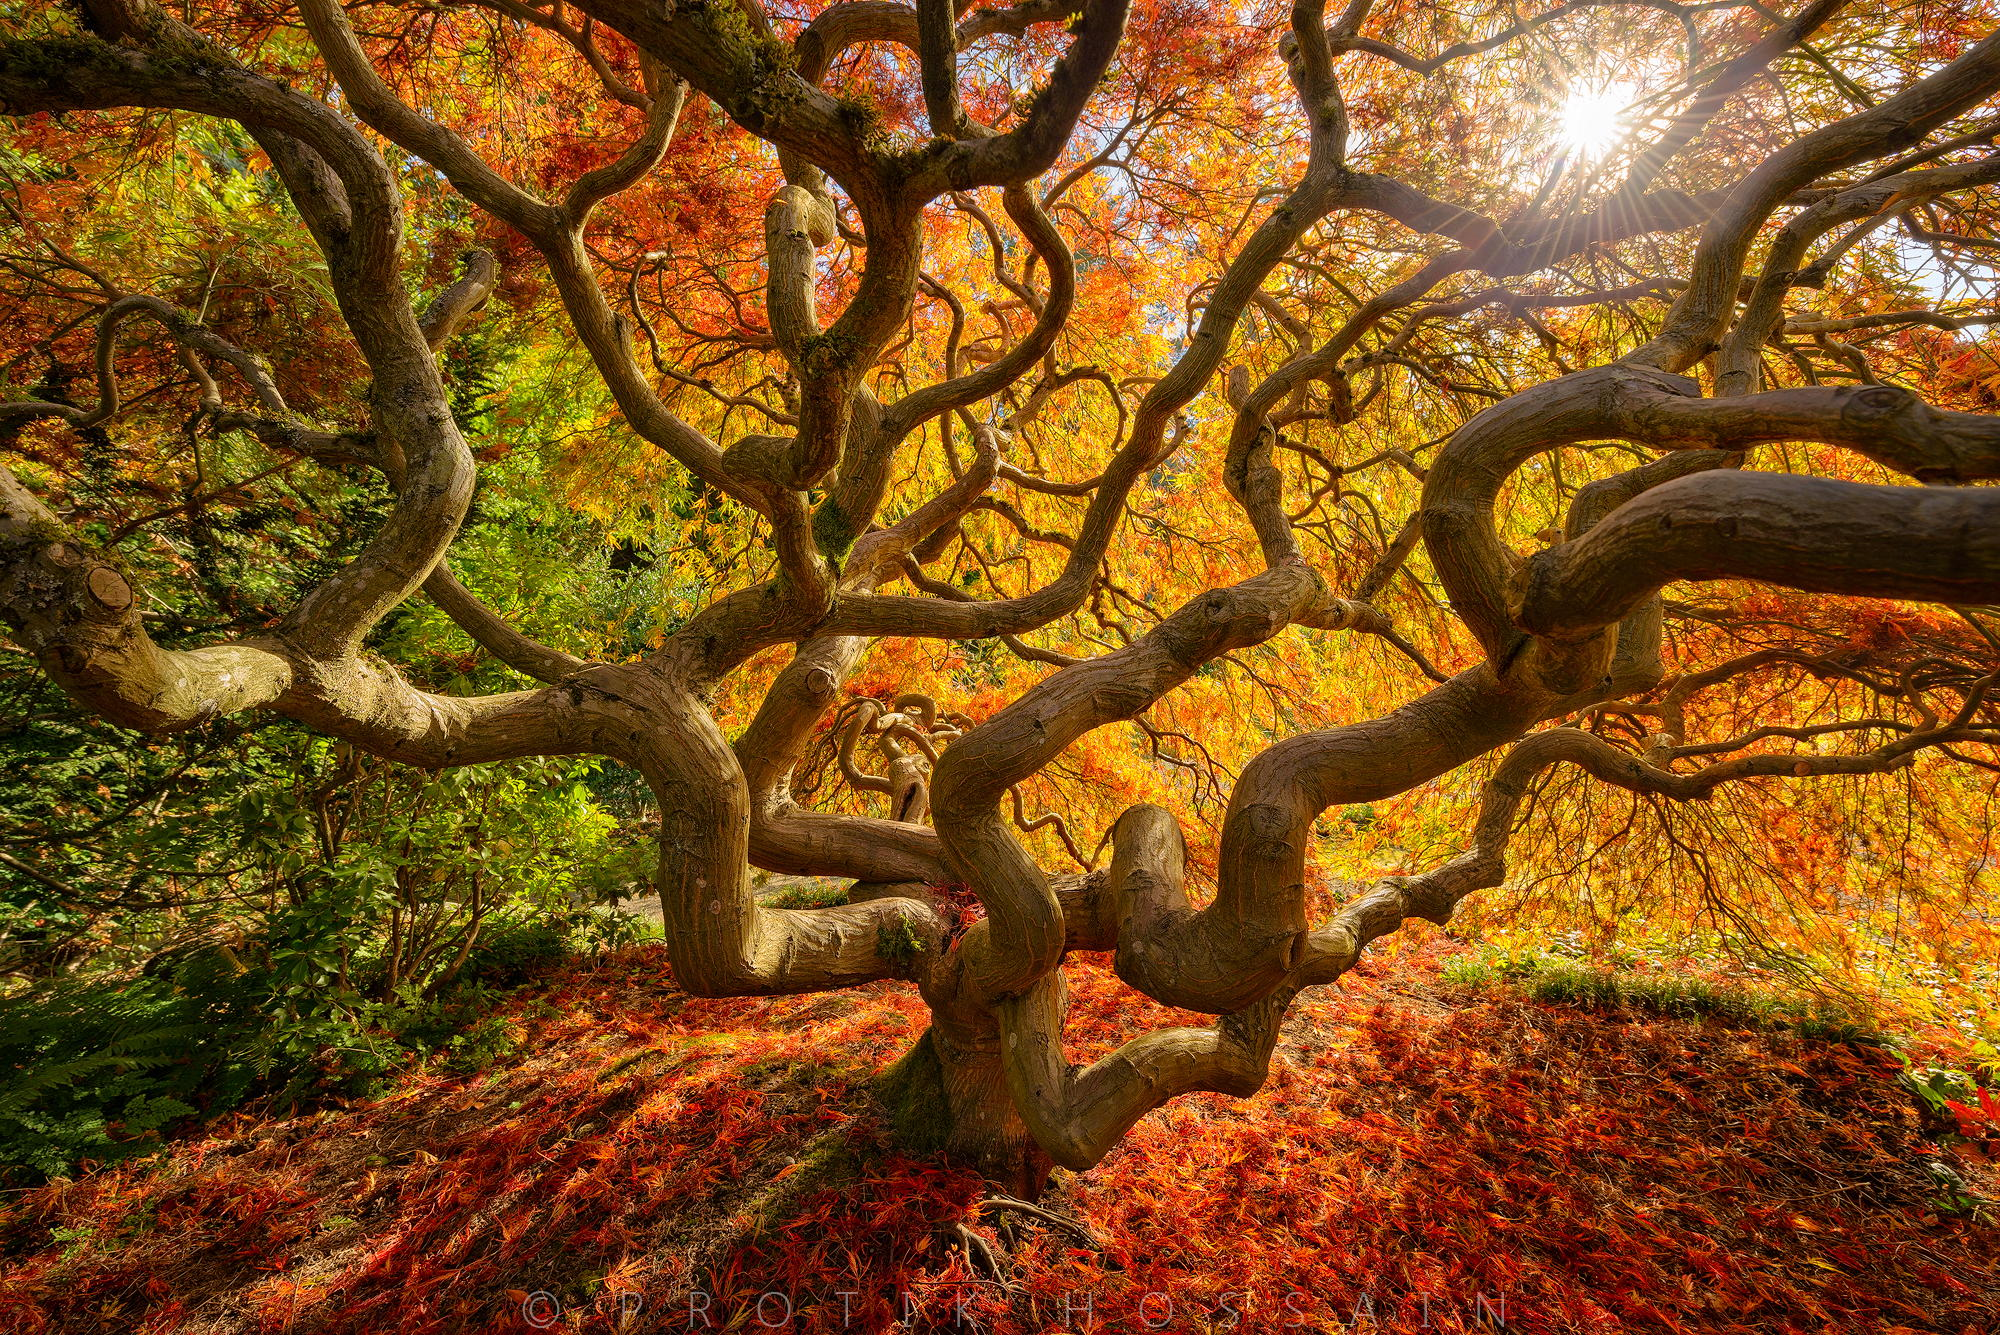 Fall color explosion by Protik Hossain